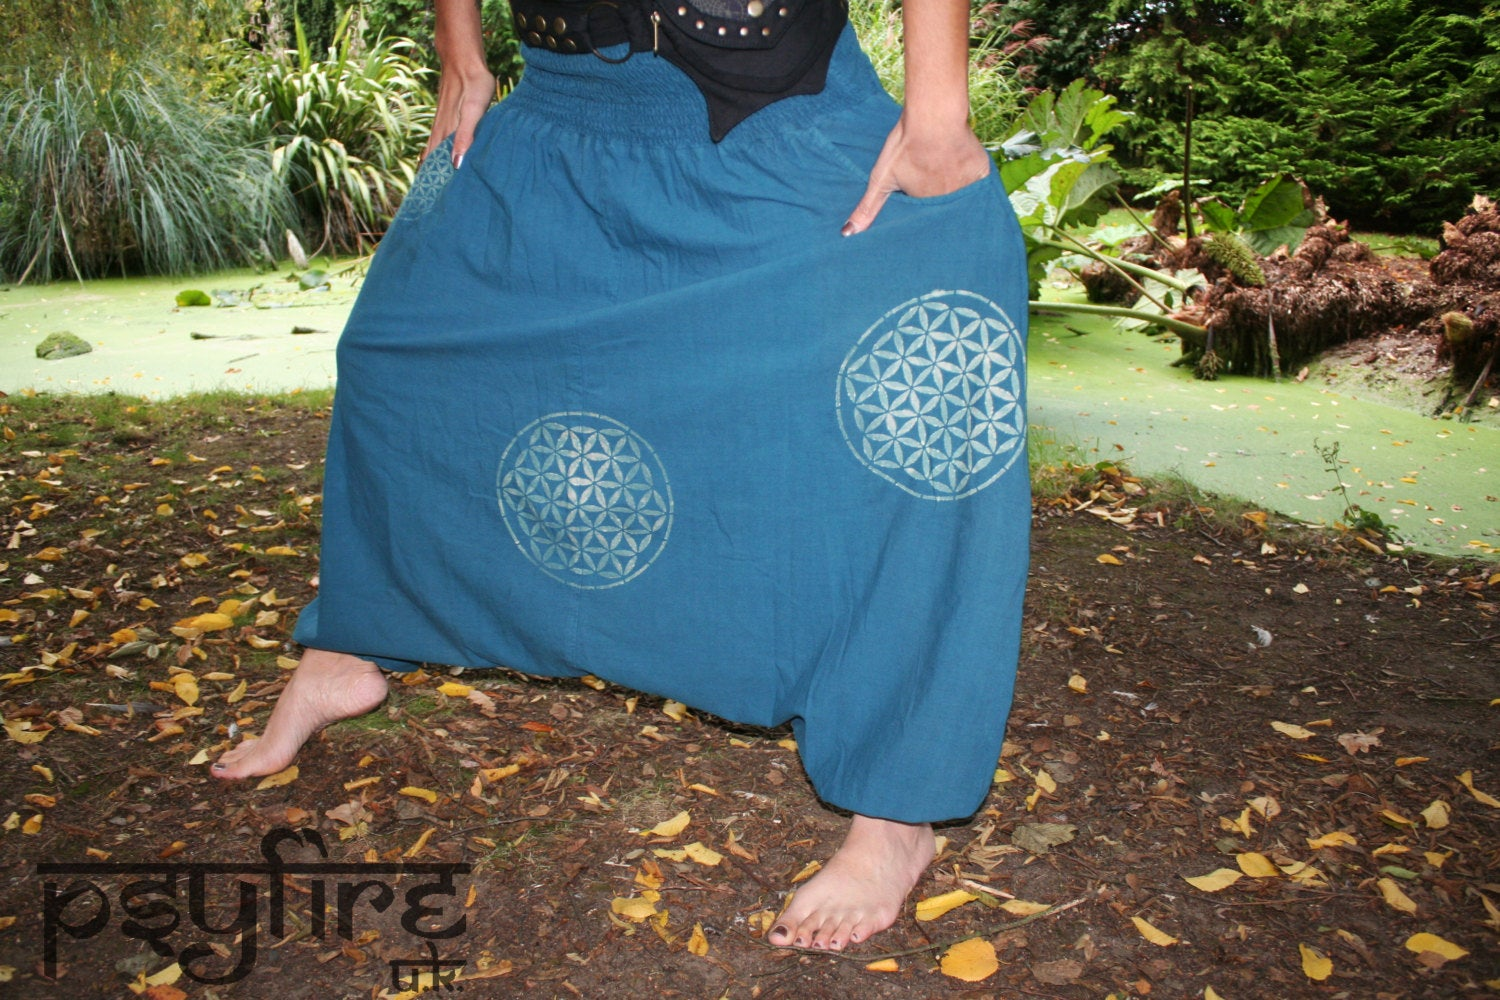 FLOWER OF LIFE Harem Pants - Unisex Ali Baba Trousers, Hippie Yoga Pants, Fisherman Pants, Baggy Trousers, Psytrance Pants, Aladdin Trousers